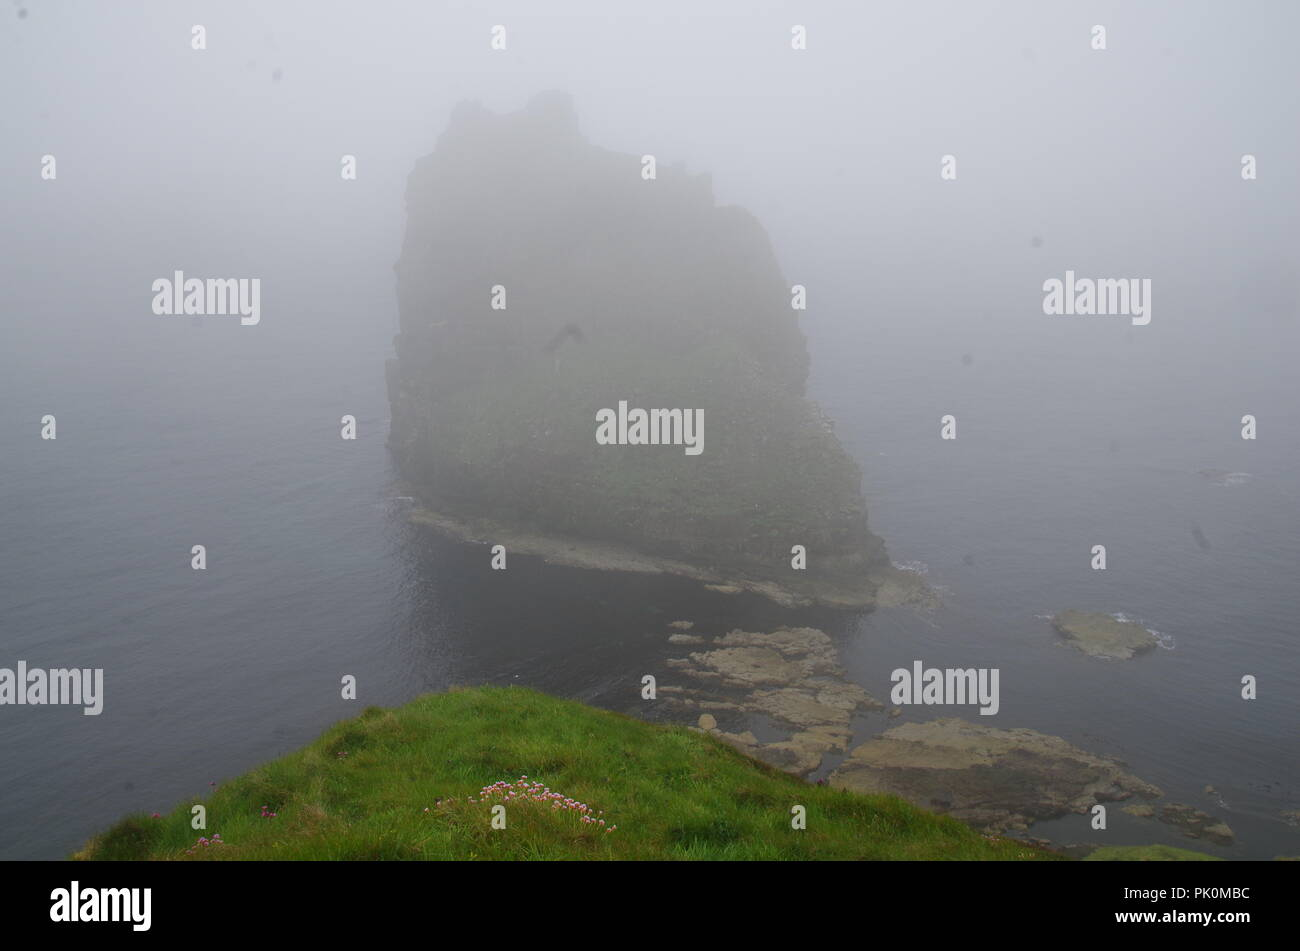 Duncansby Stacks. Duncansby Head. John o' groats (Duncansby head) to lands end. Cornwall. End to end trail. Caithness. Highlands. Scotland. UK - Stock Image